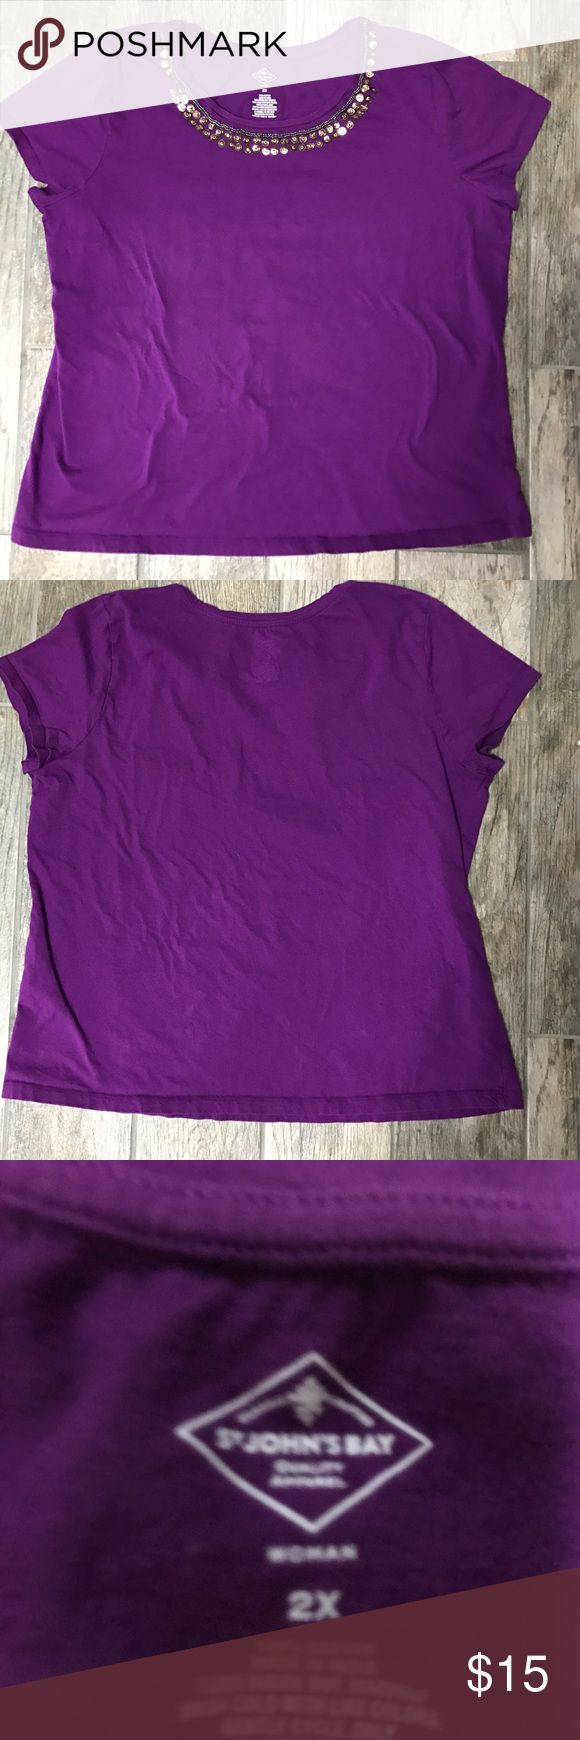 St. John's Bay Purple tee Beautiful purple tee with beading and sequins around neckline.  100 % cotton. Good condition with normal wear. Offers welcome. St. John's Bay Tops Tees - Short Sleeve